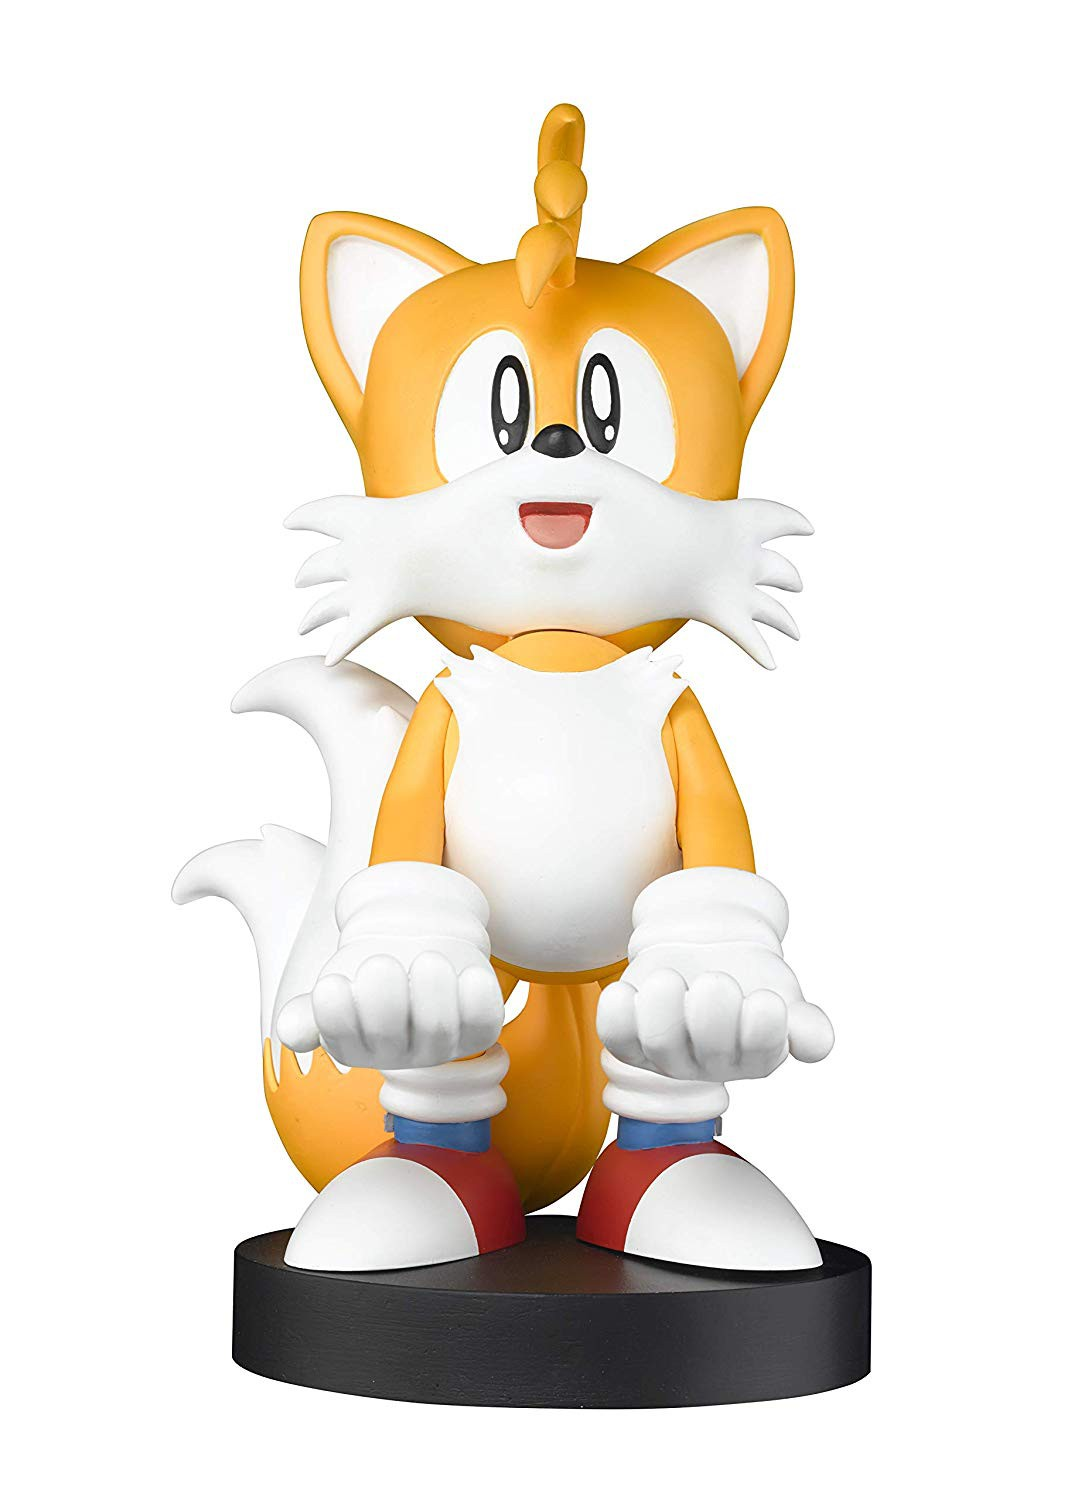 Sonic the Hedgehog - Tails Cable Guy stovas